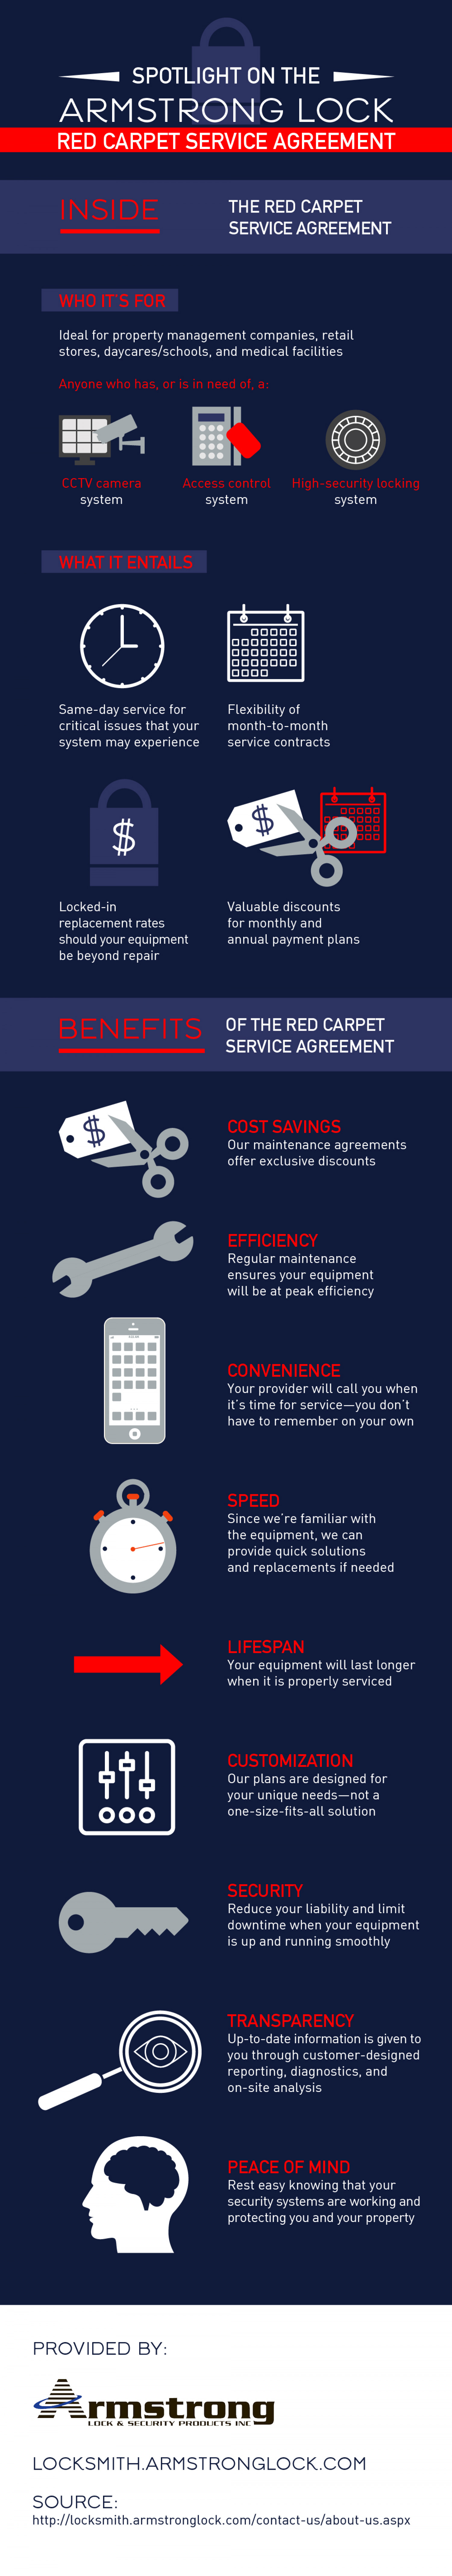 Spotlight on the Armstrong Lock Red Carpet Service Agreement  Infographic